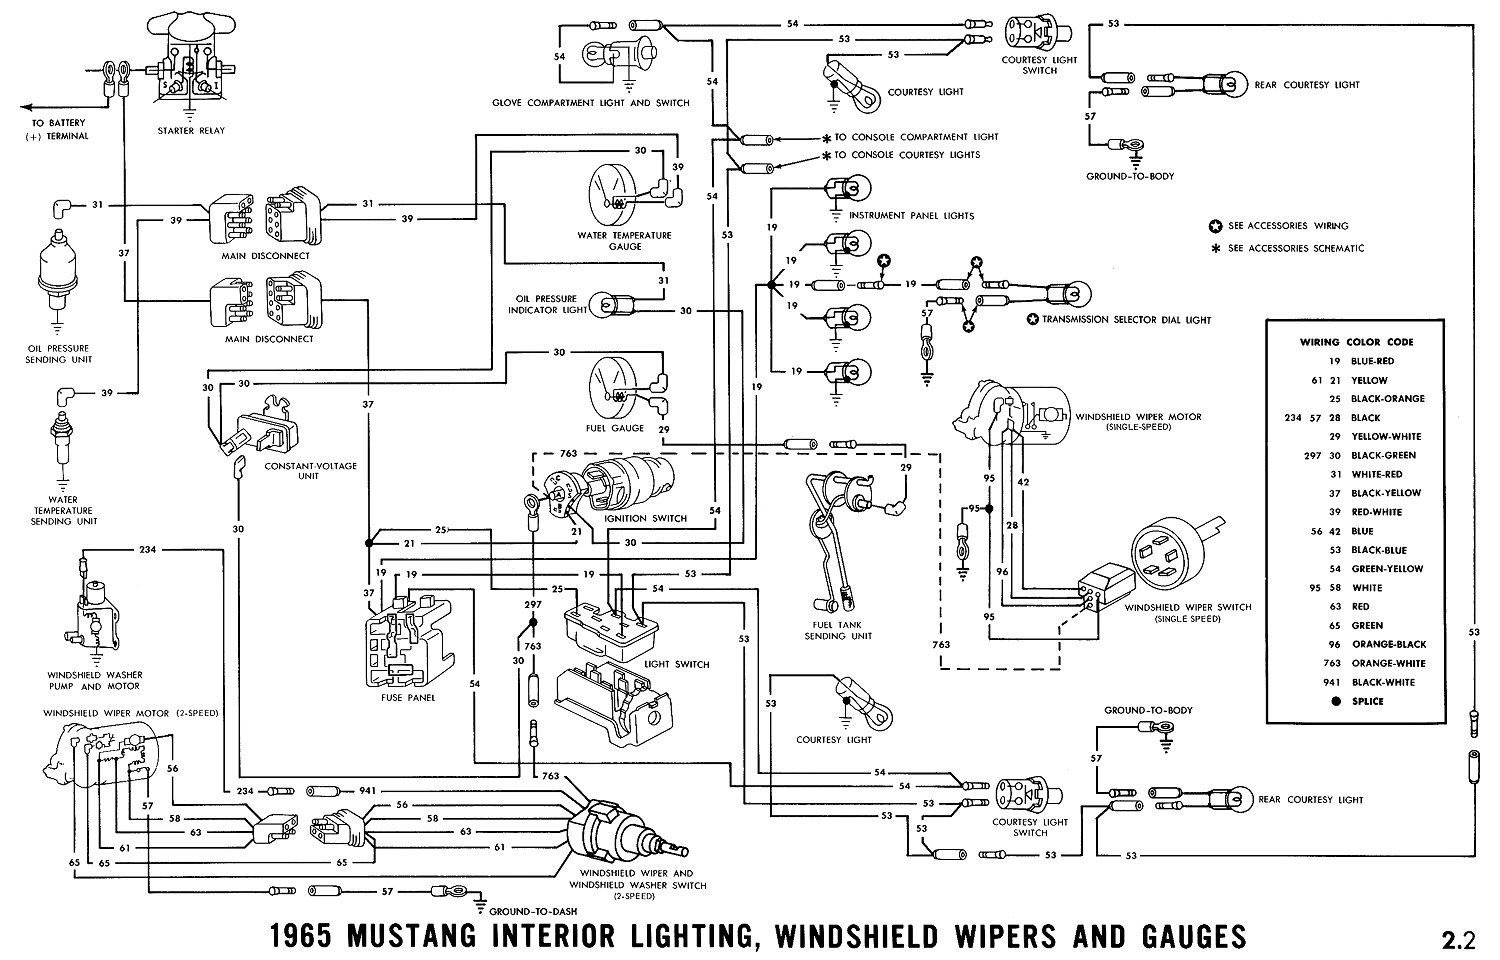 1965g 1965 mustang wiring diagrams average joe restoration 66 mustang engine wiring diagram free at bayanpartner.co